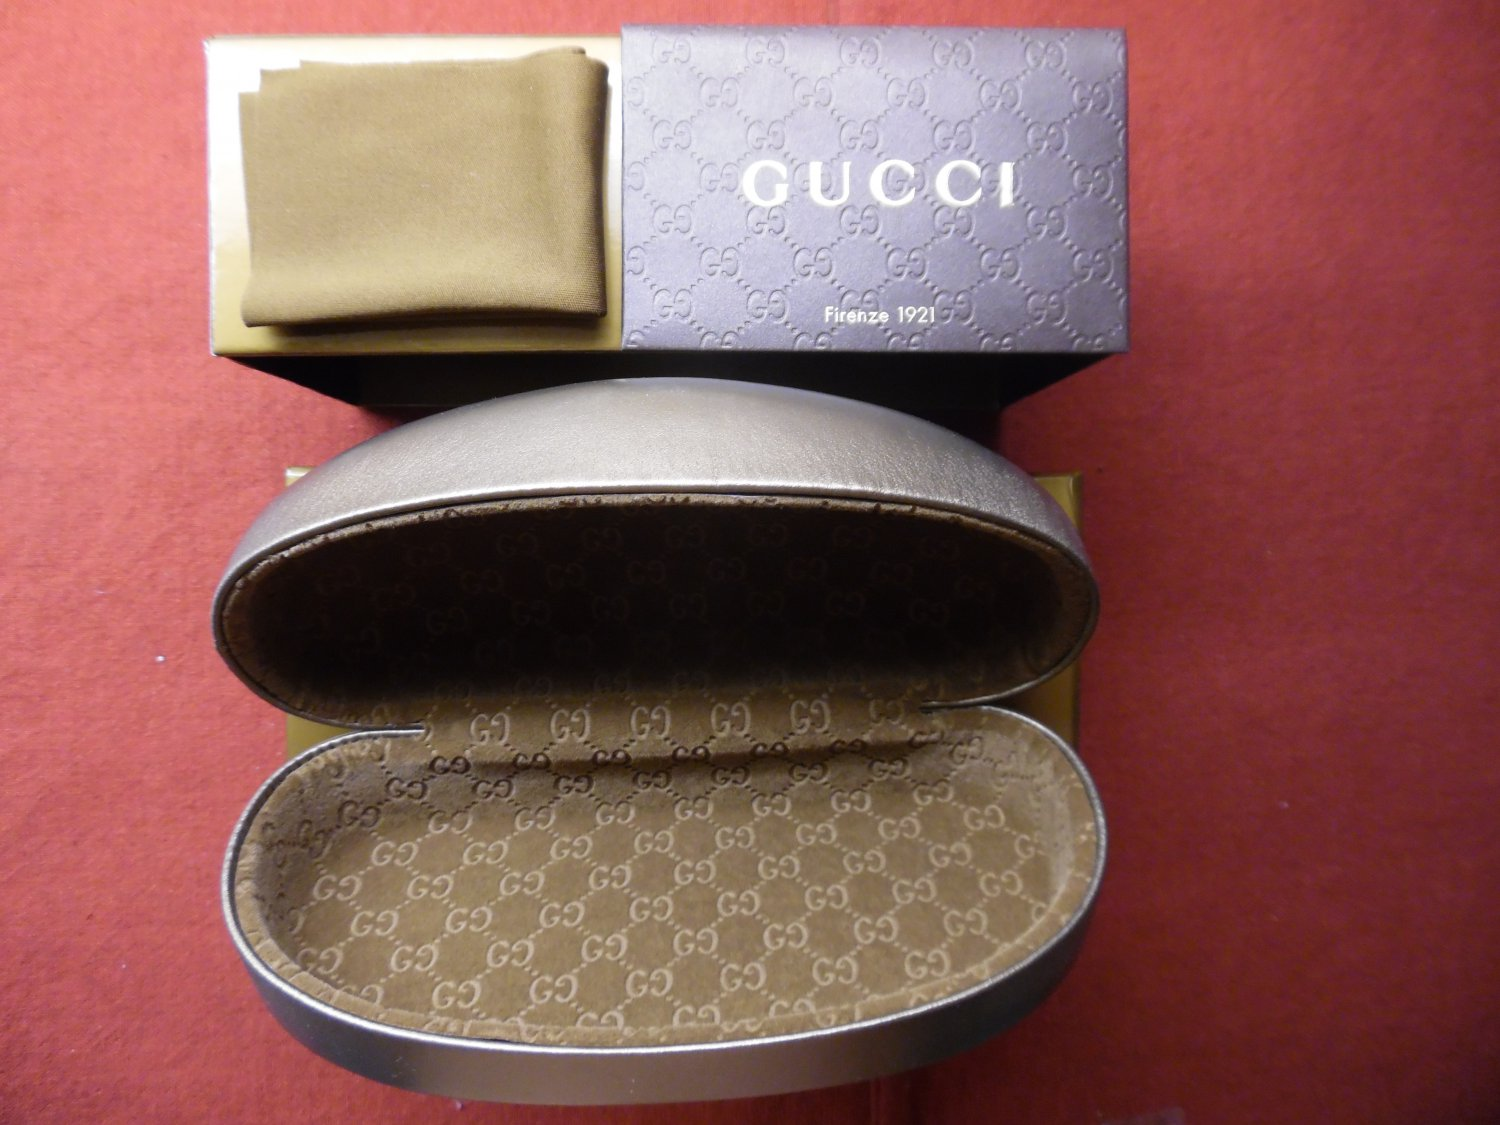 GUCCI Unisex Bronze Sunglasses Case with Cleaning Cloth